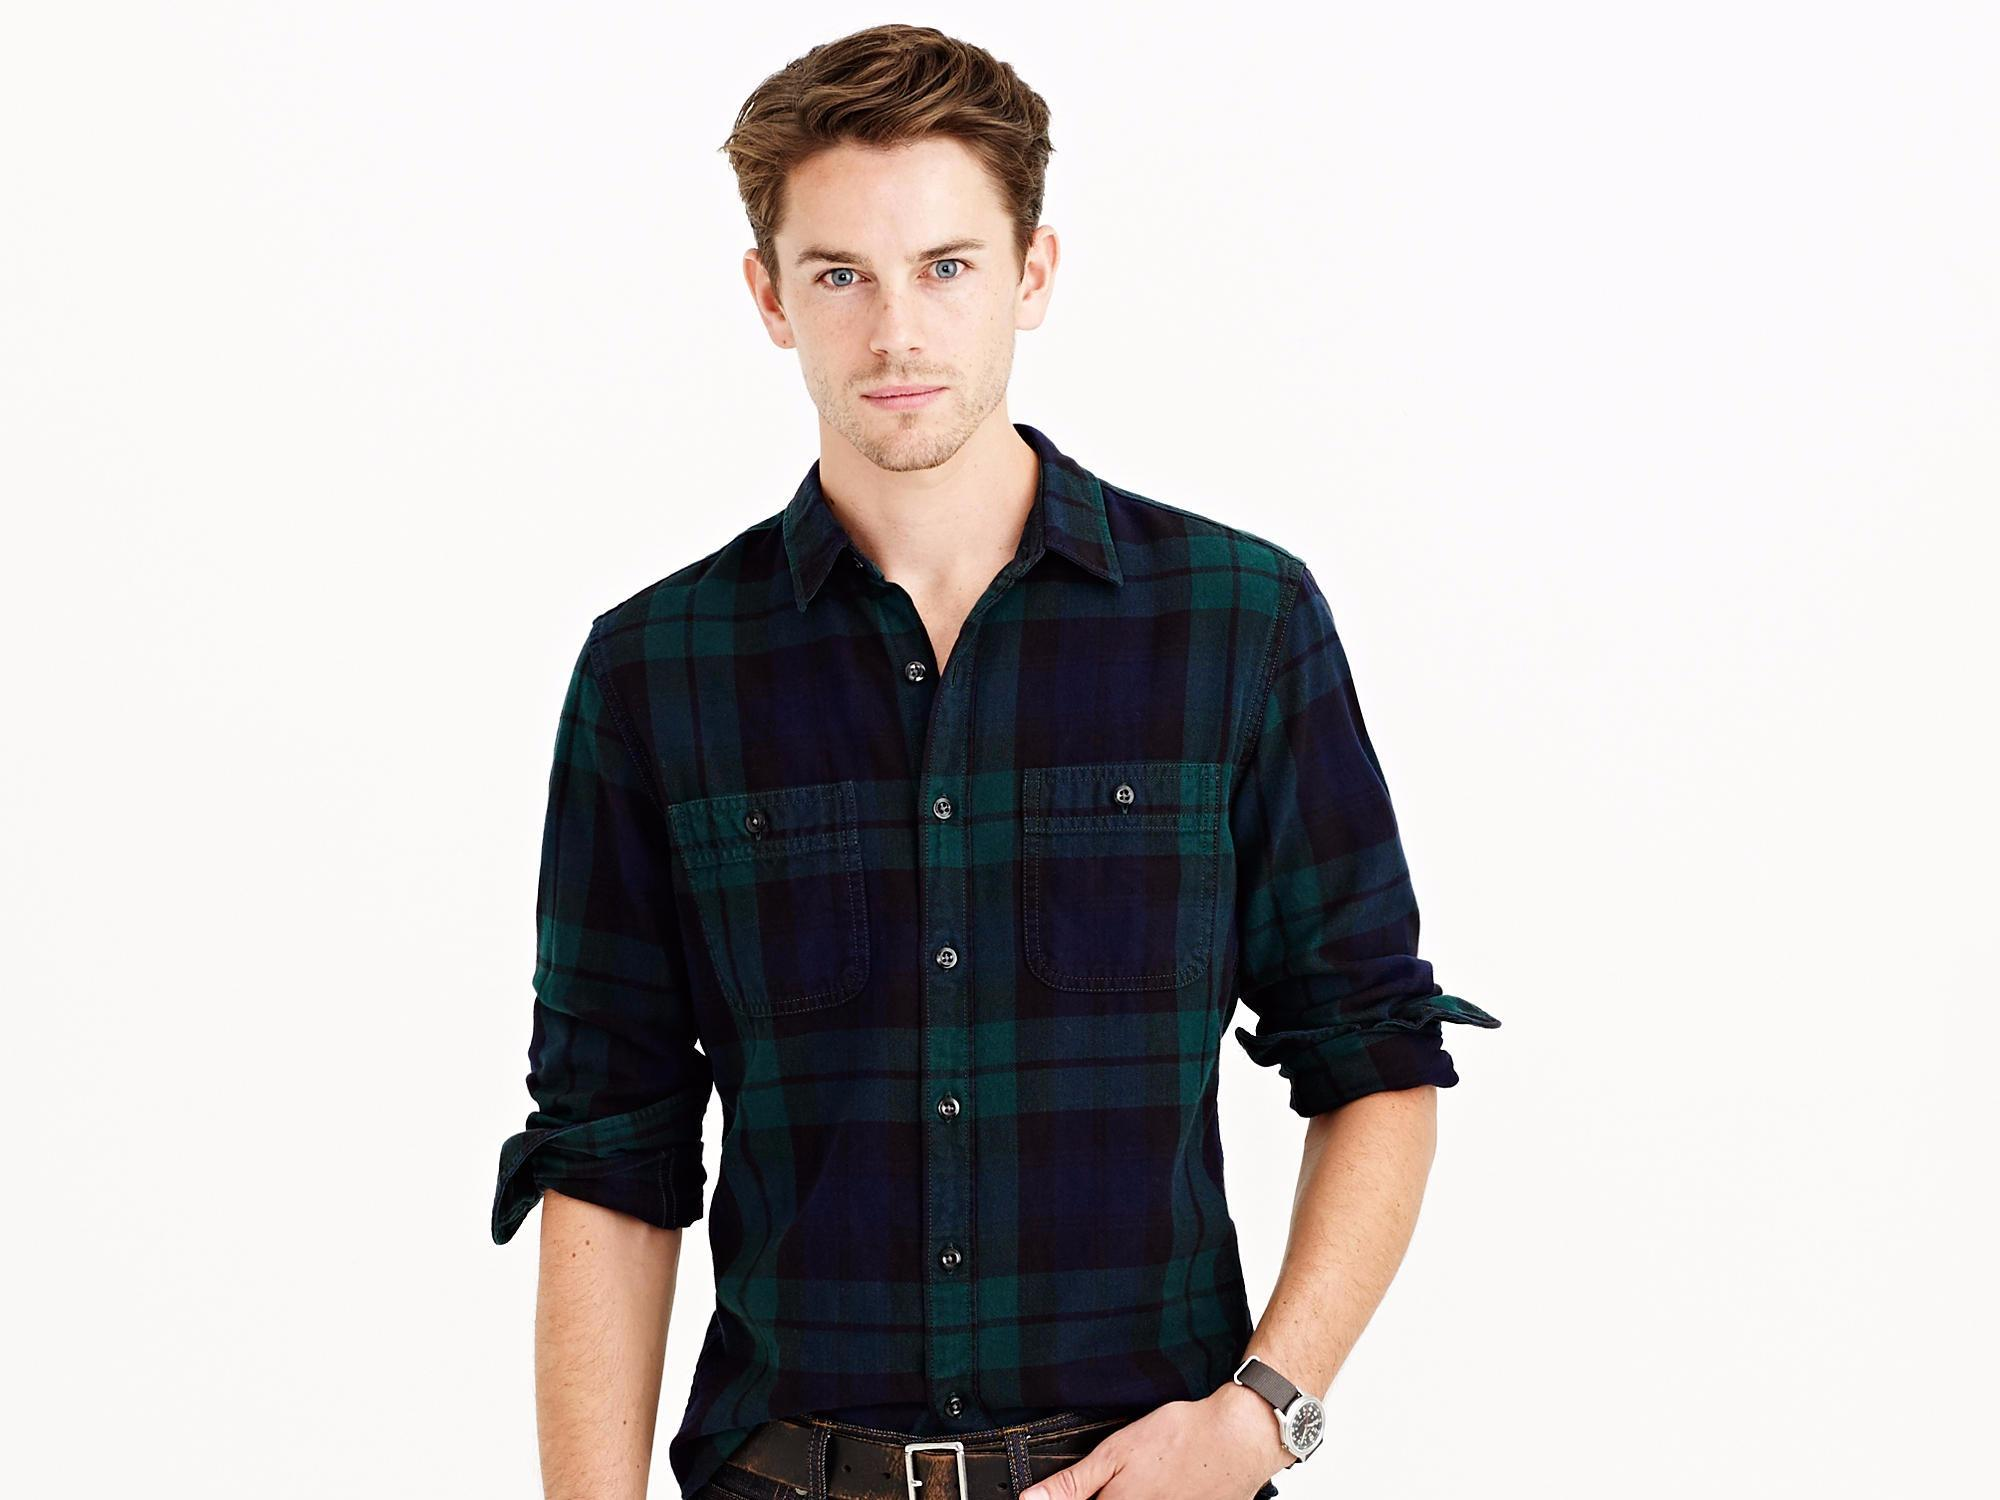 7e4168c8c6 How to wear flannel without looking like a lumberjack